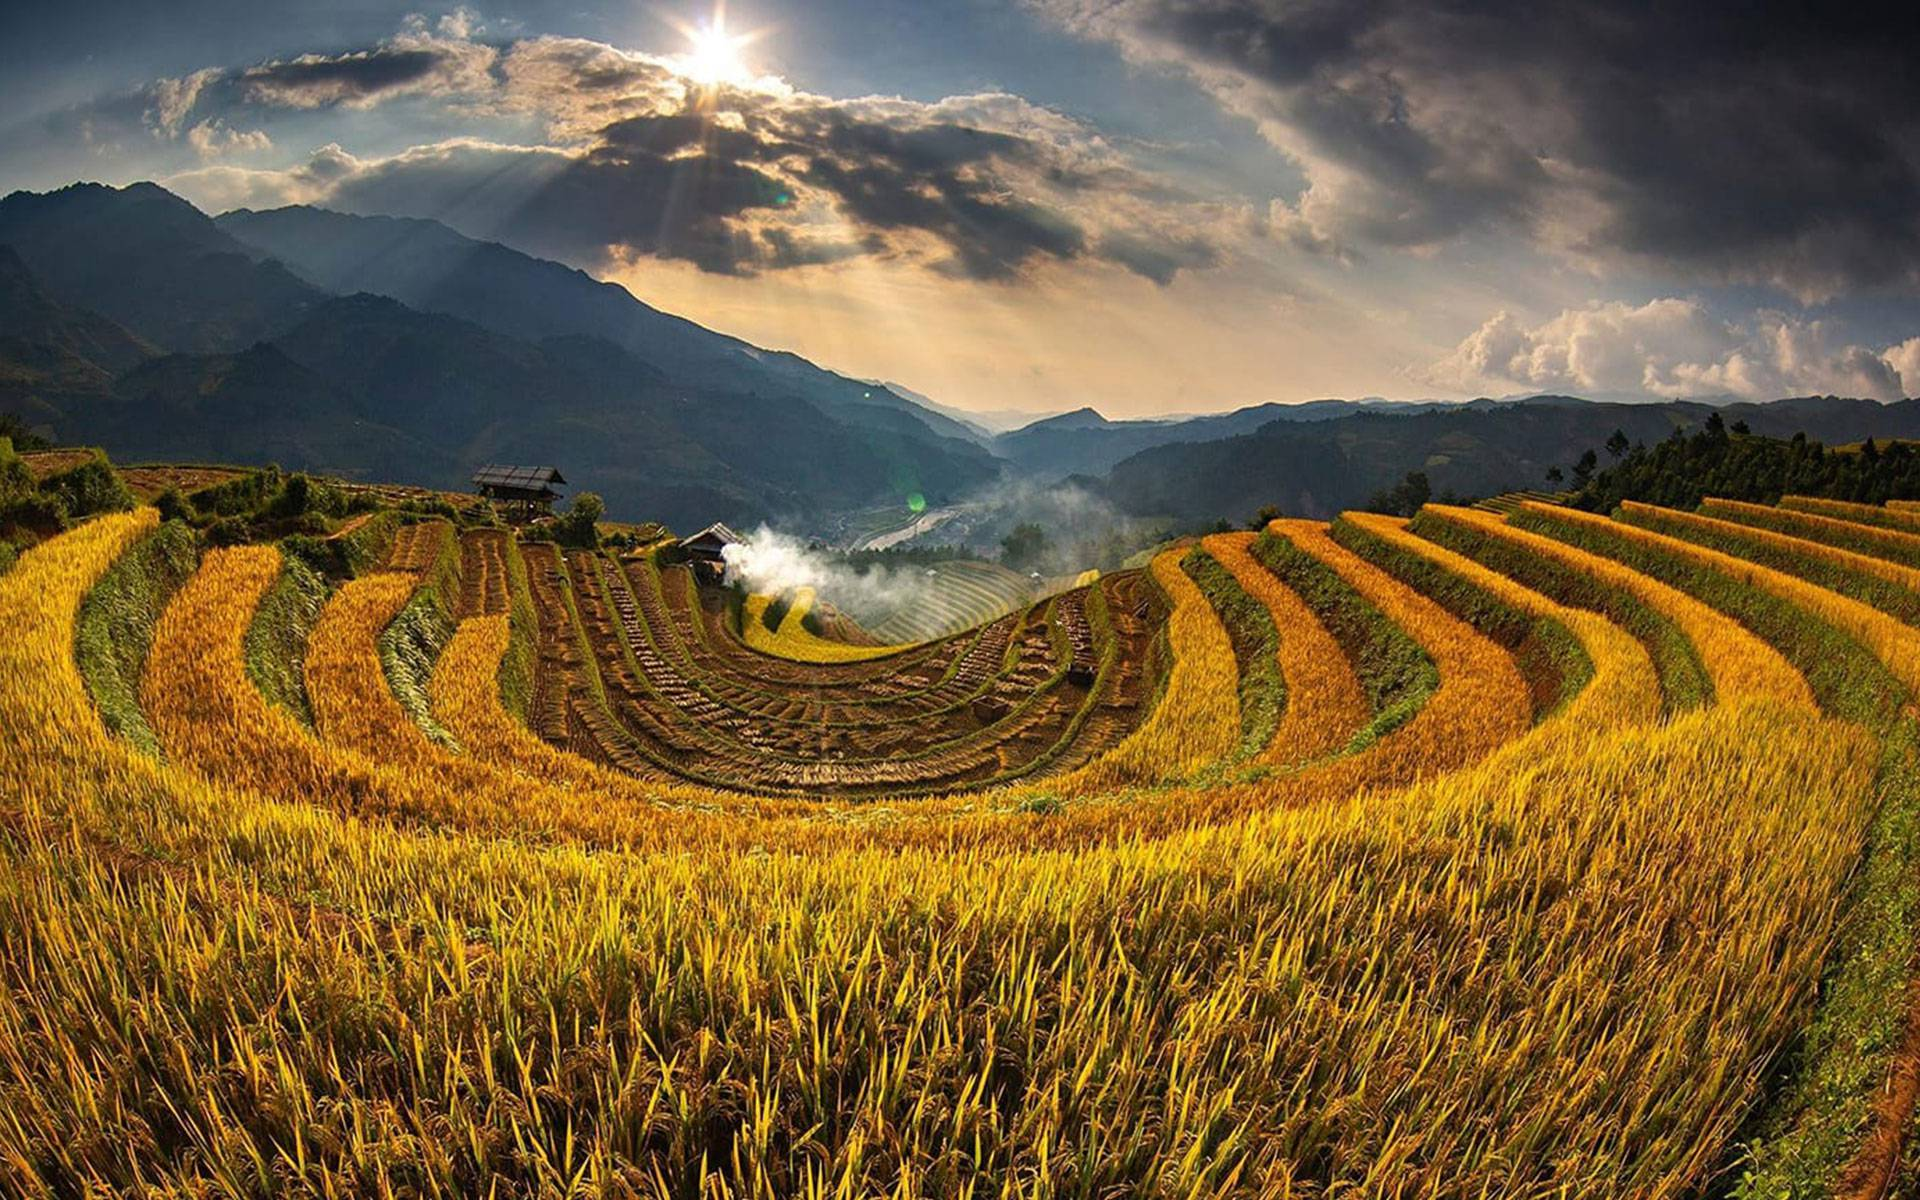 golden rice filed in Mu Cang Chai